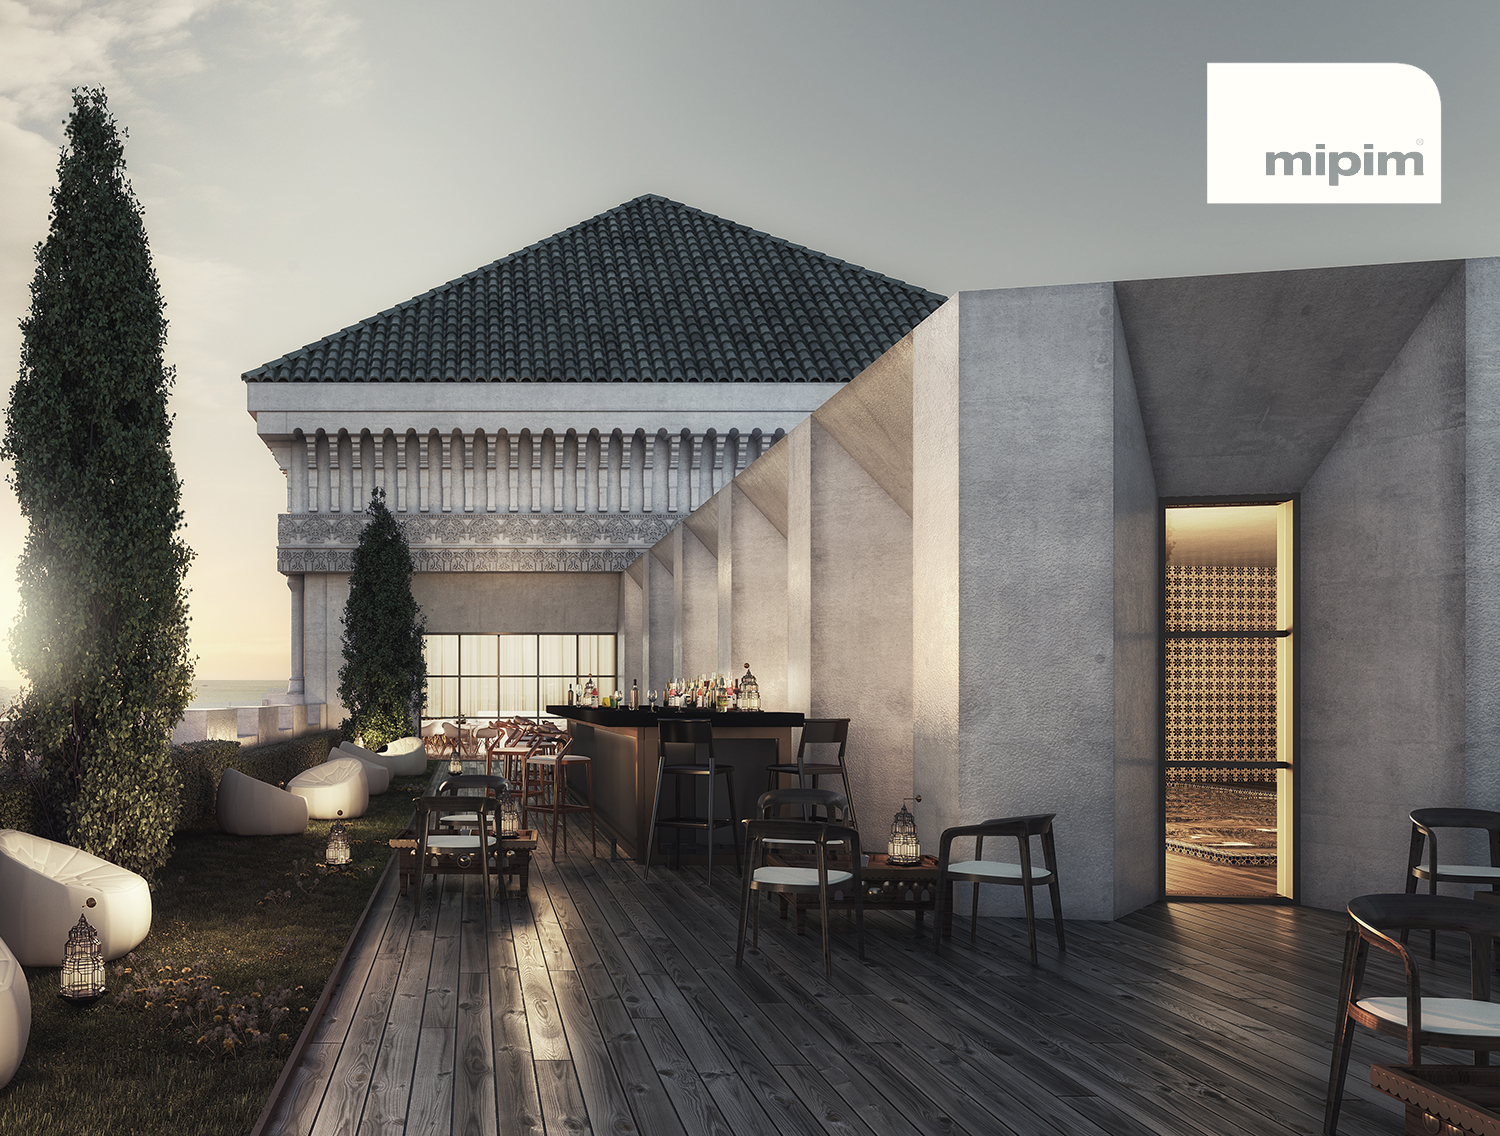 EVNT - MAR. 14, 2019 | O+C presents at MIPIM 2019 alongside client REALITES, the transformation of the iconic Hôtel Lincoln in Casablanca